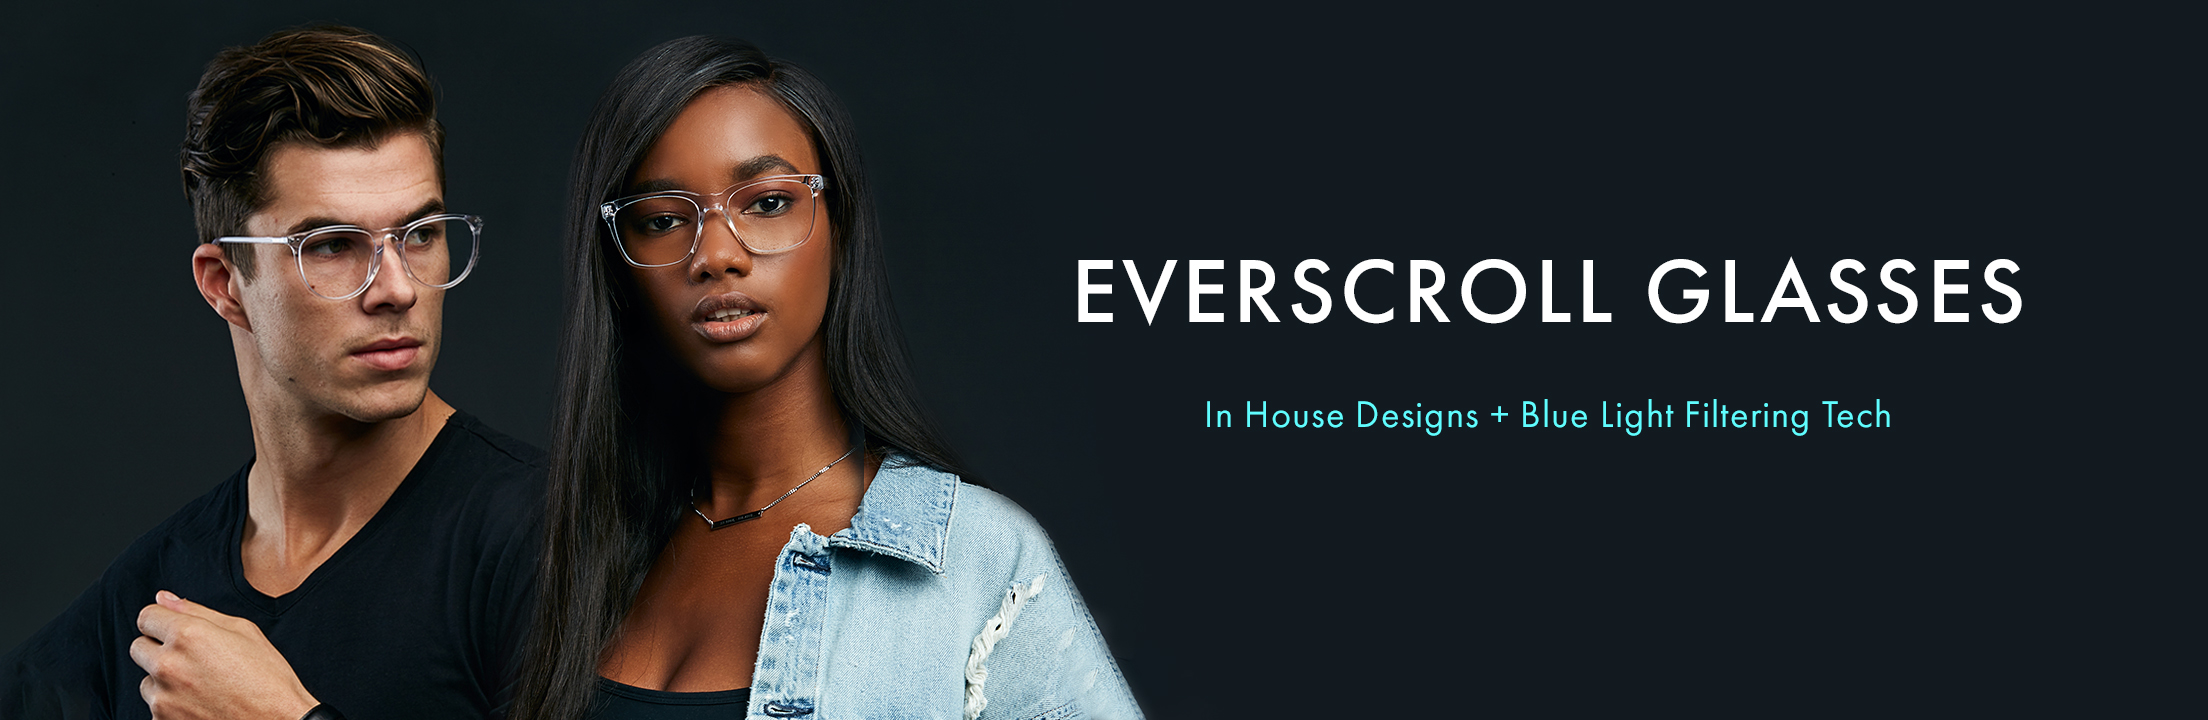 Everscroll glasses. In house designs + blue light filtering tech